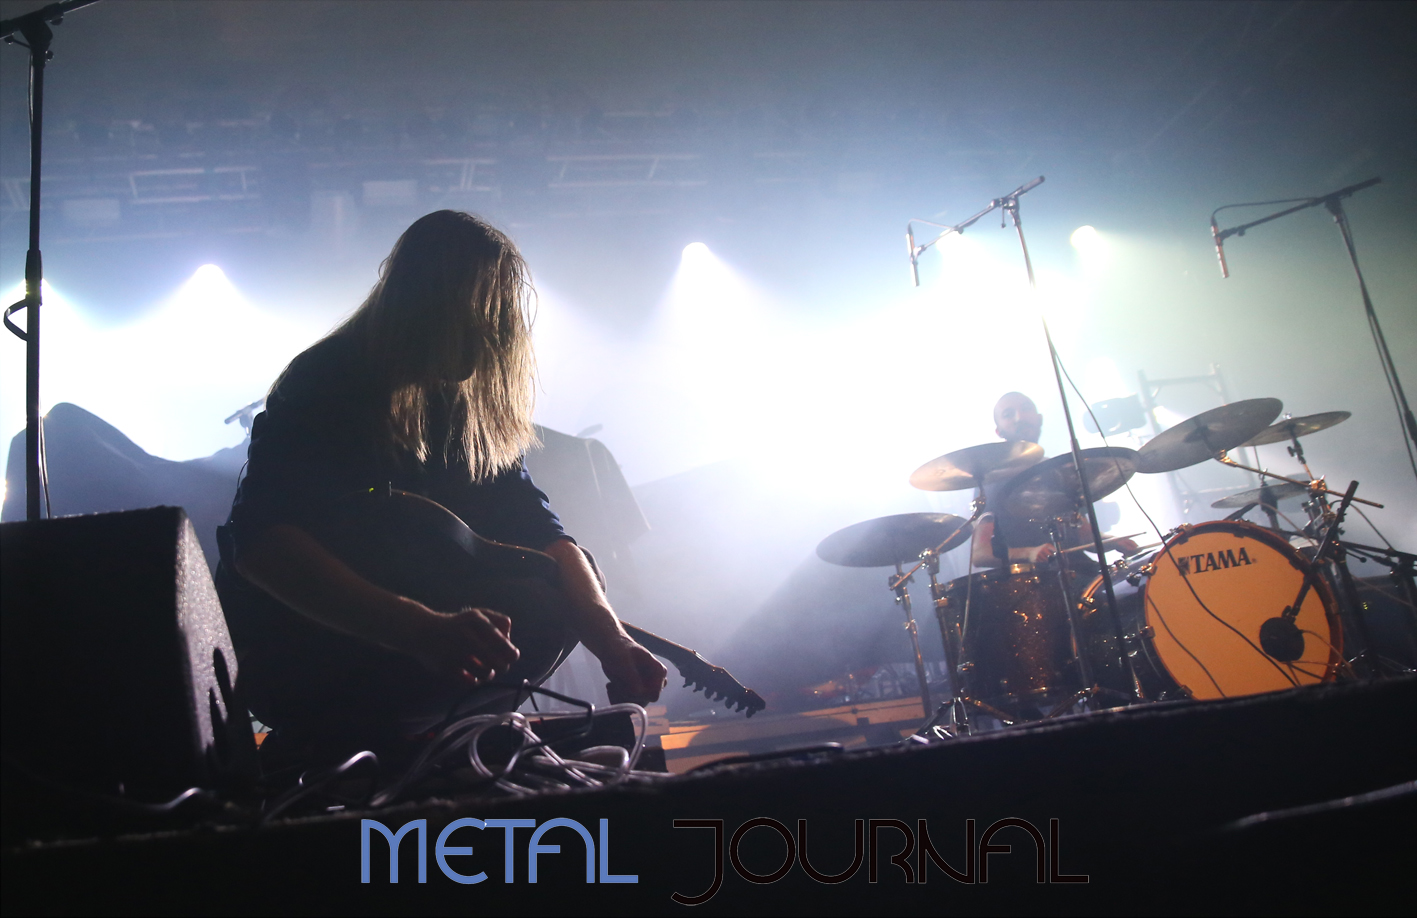 vola - metal journal 2019 pic 5